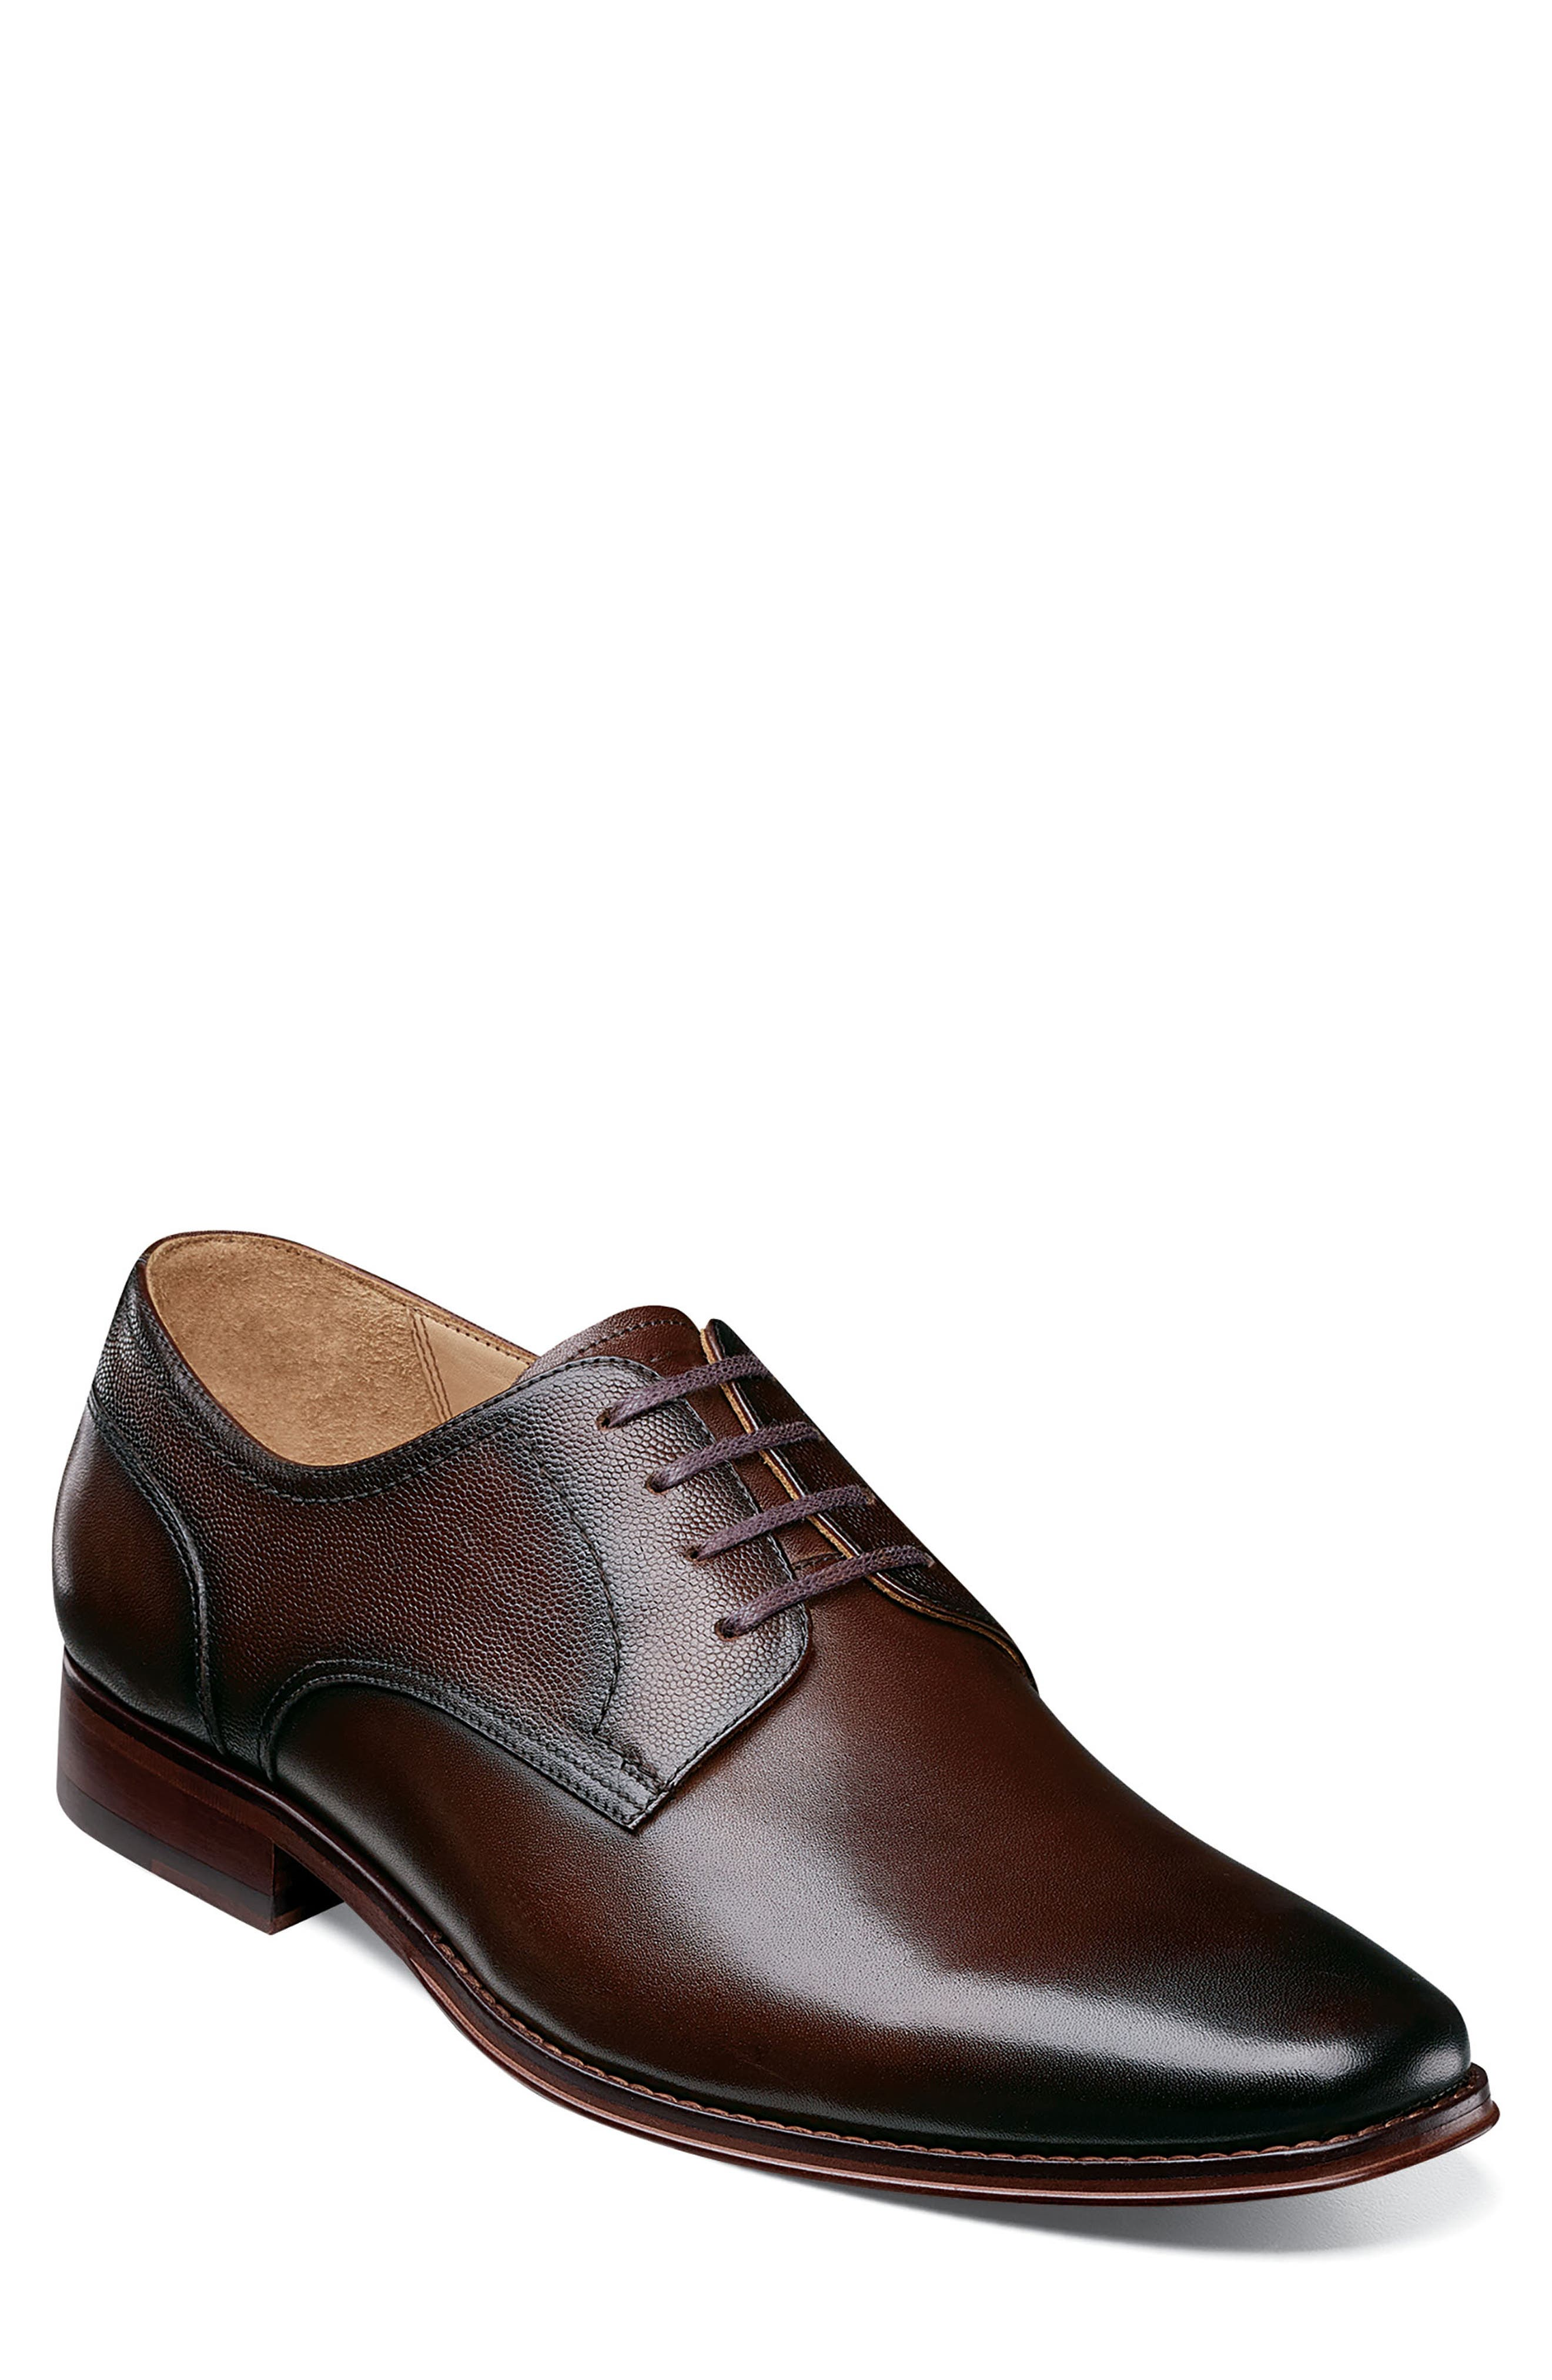 Imperial Palermo Plain Toe Derby